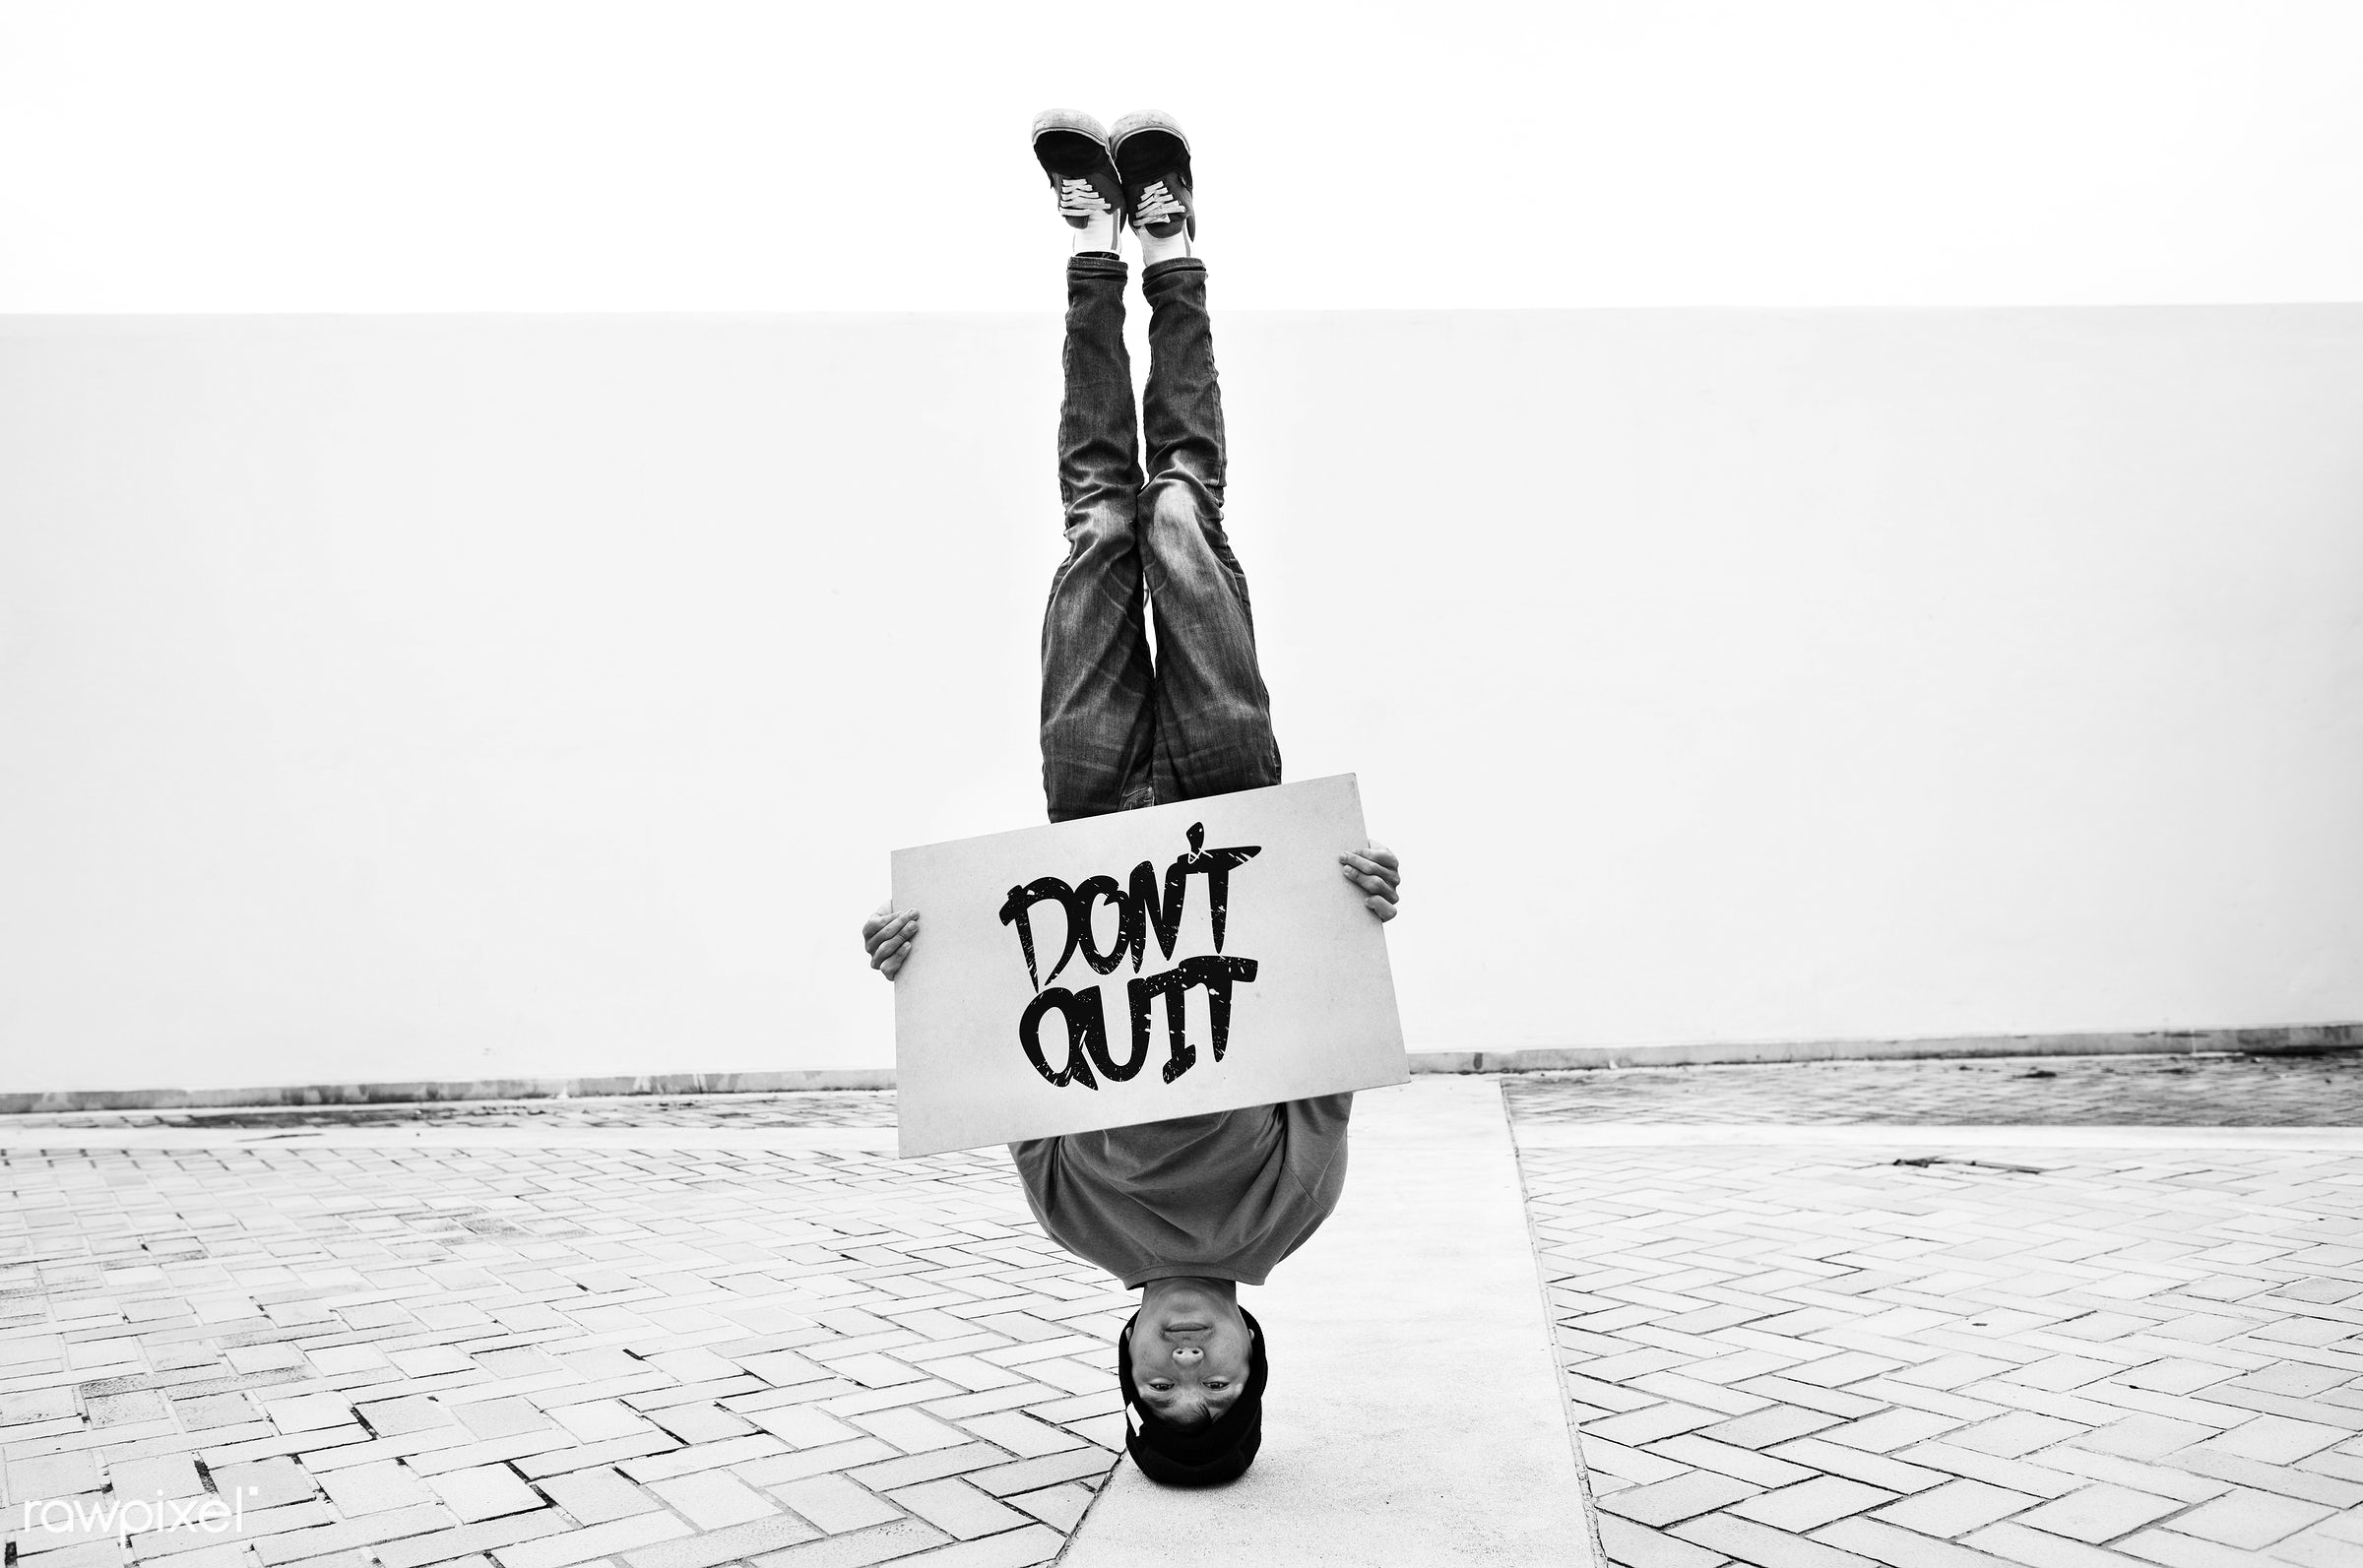 hip hop, active, asian, b-boy, balance, break dancer, breakdance, breakdancing, culture, dance, dancer, dancing, don't quit...